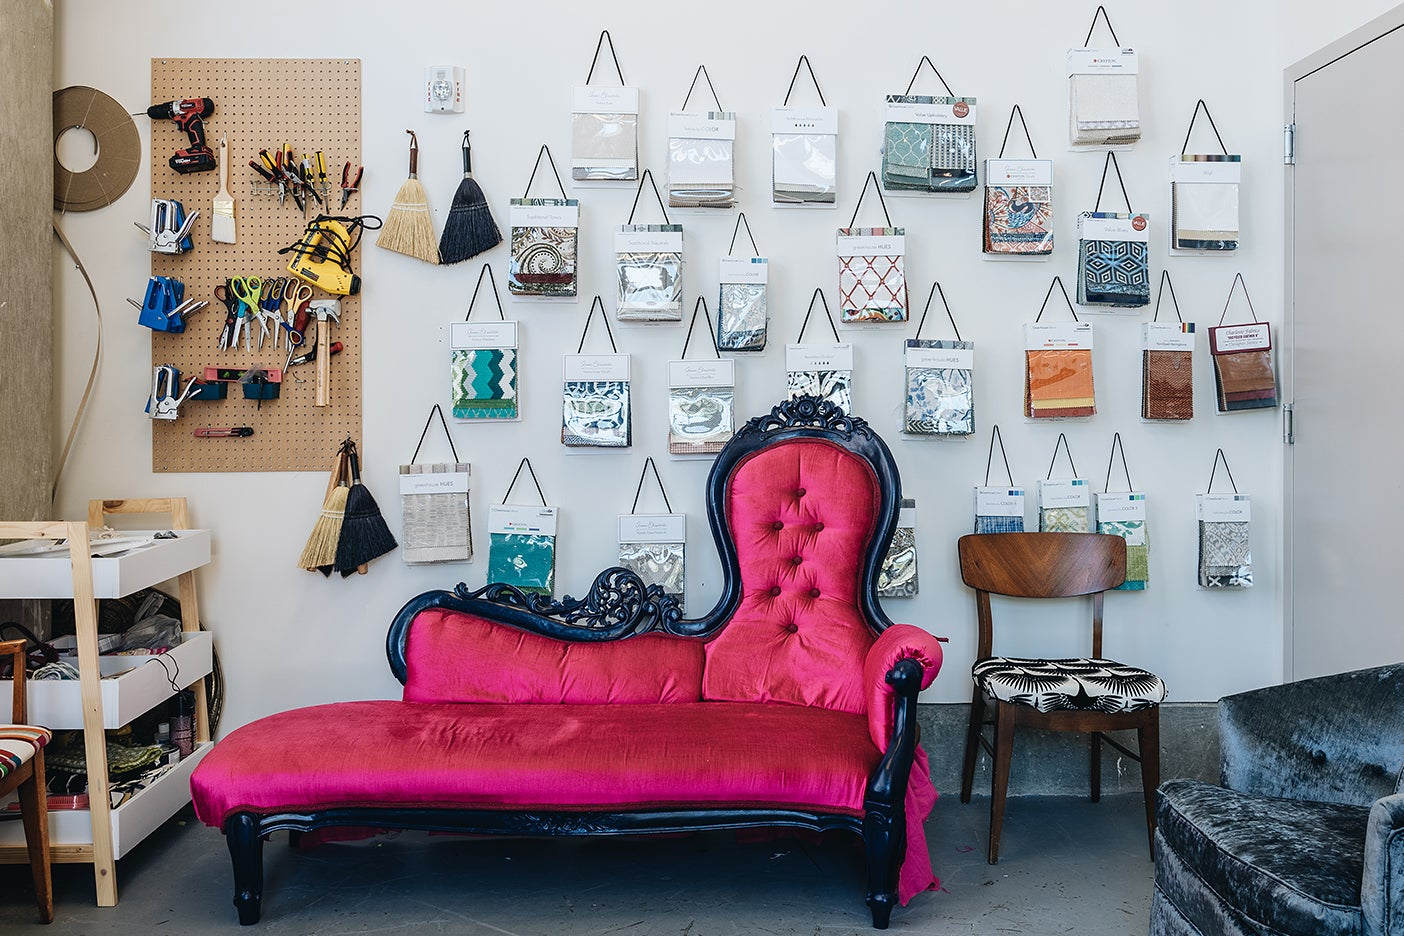 pink couch with fabric hanging on wall